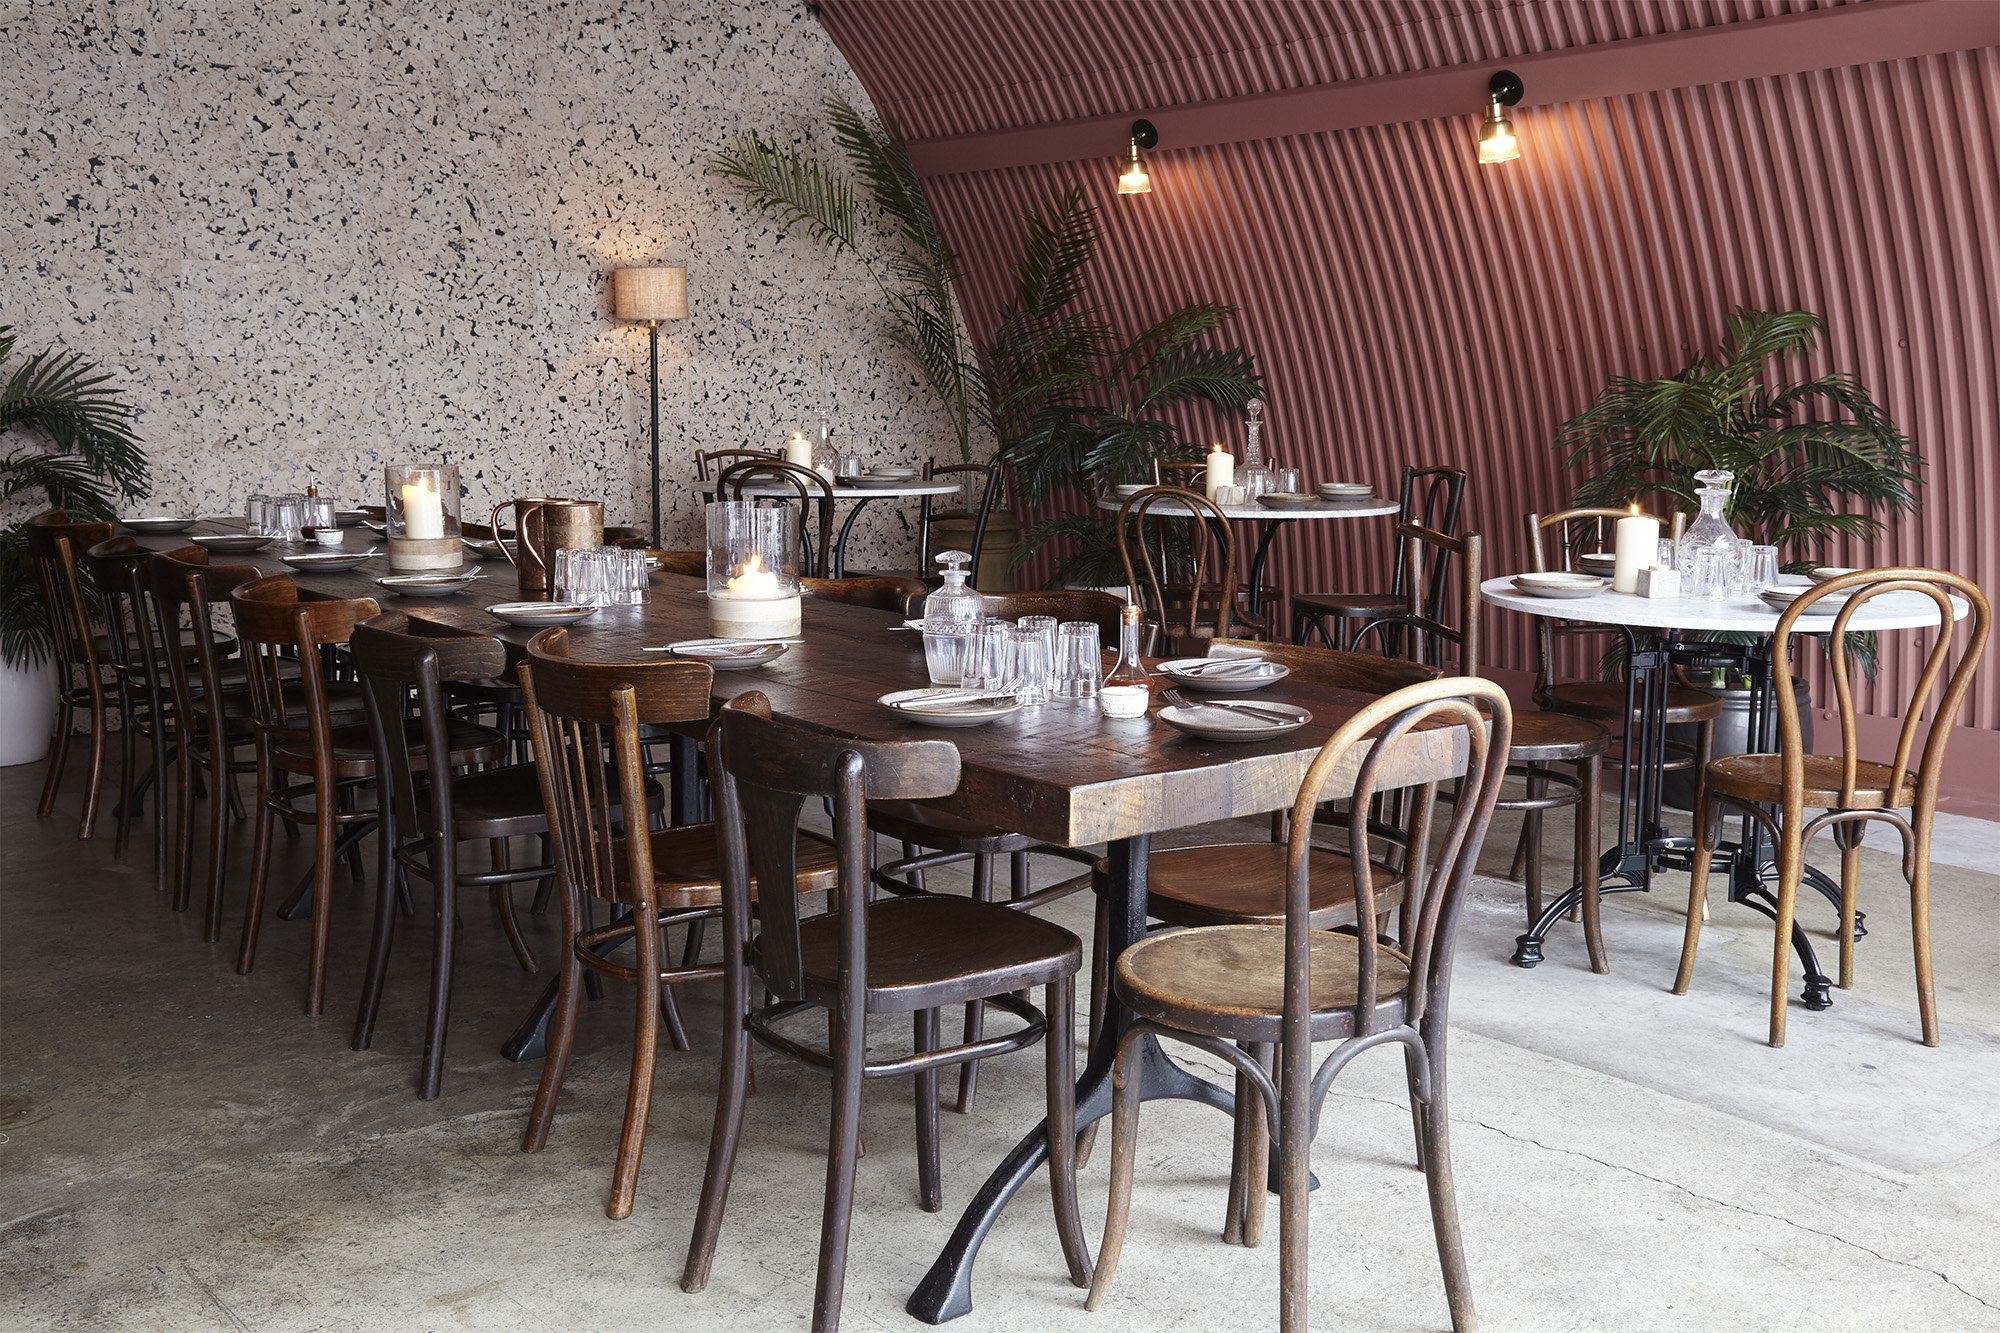 Kricket-brixton-london-restaurant-indian-cool-design-run-for-the-hills.jpg